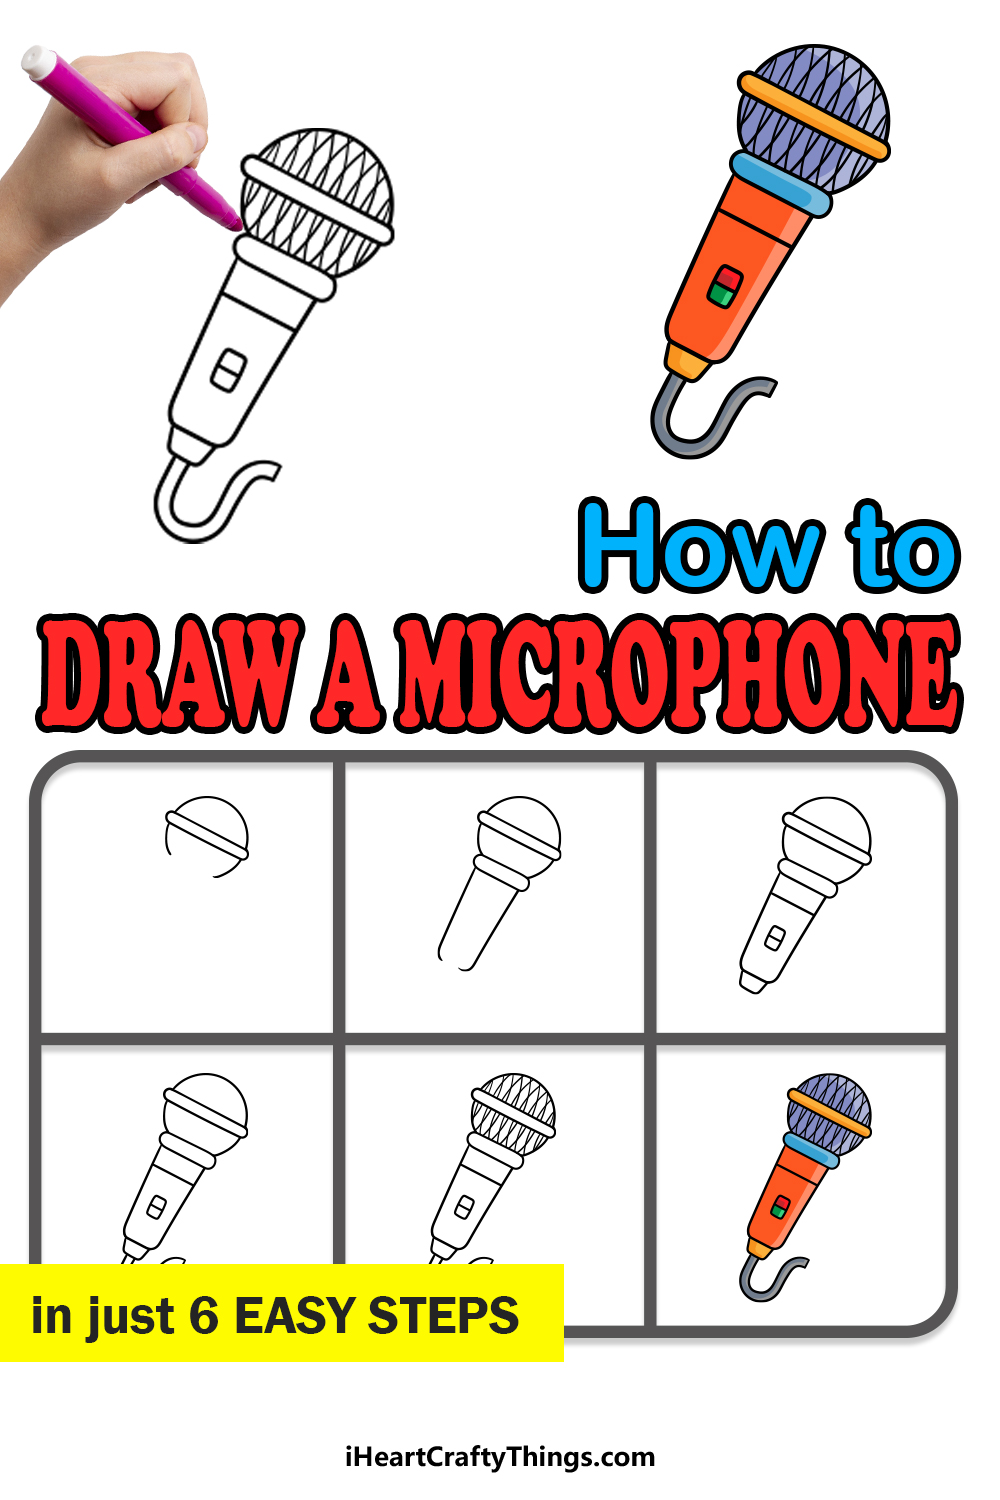 how to draw a microphone in 6 easy steps